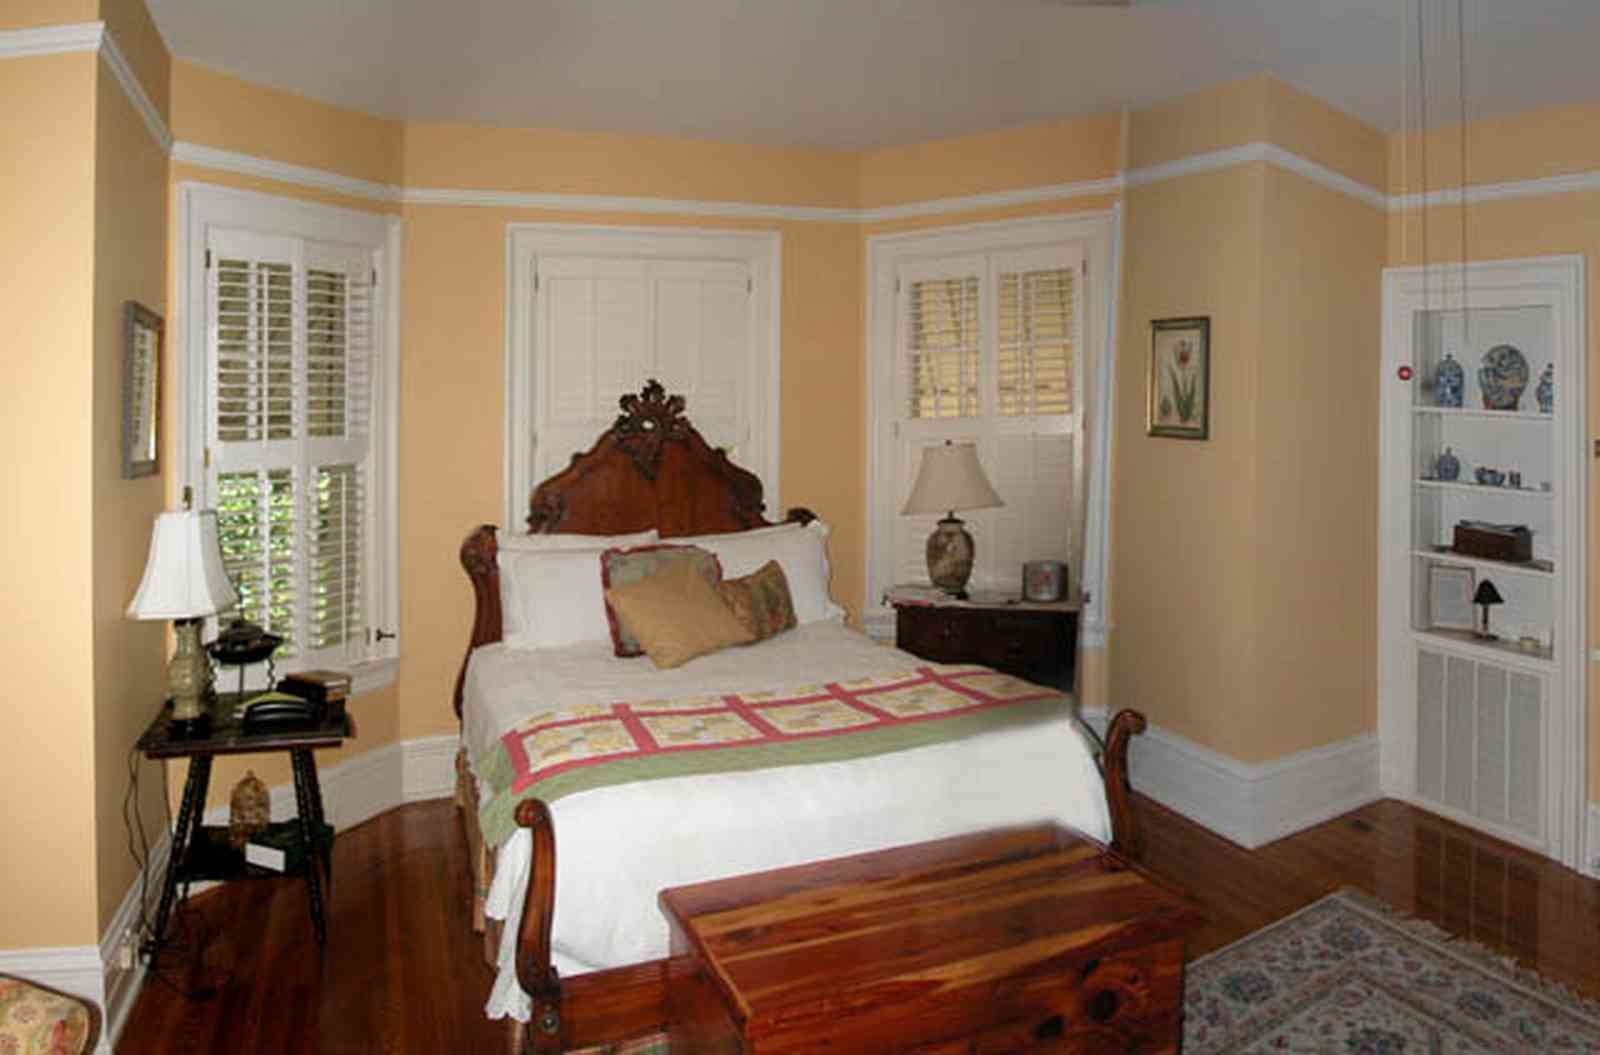 North-Hill:-105-West-Gonzales-Street_62.jpg:  antique bed, cedar chest, oriental rug, shutters, awnings wainscotting, hardwood floor